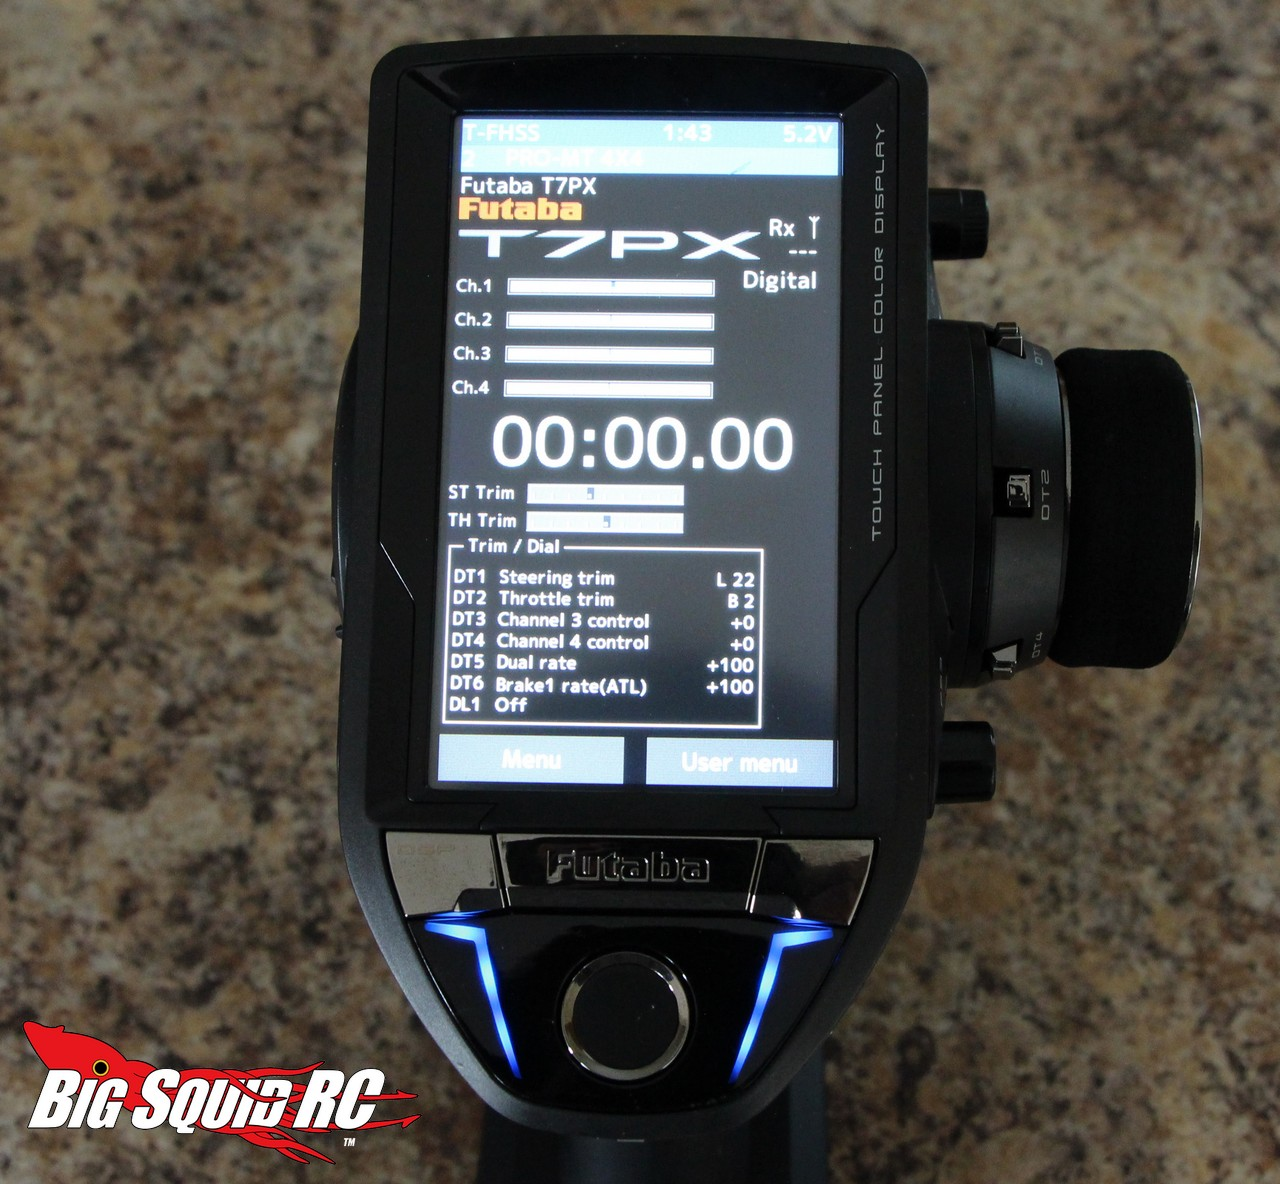 futaba 7px limited edition review